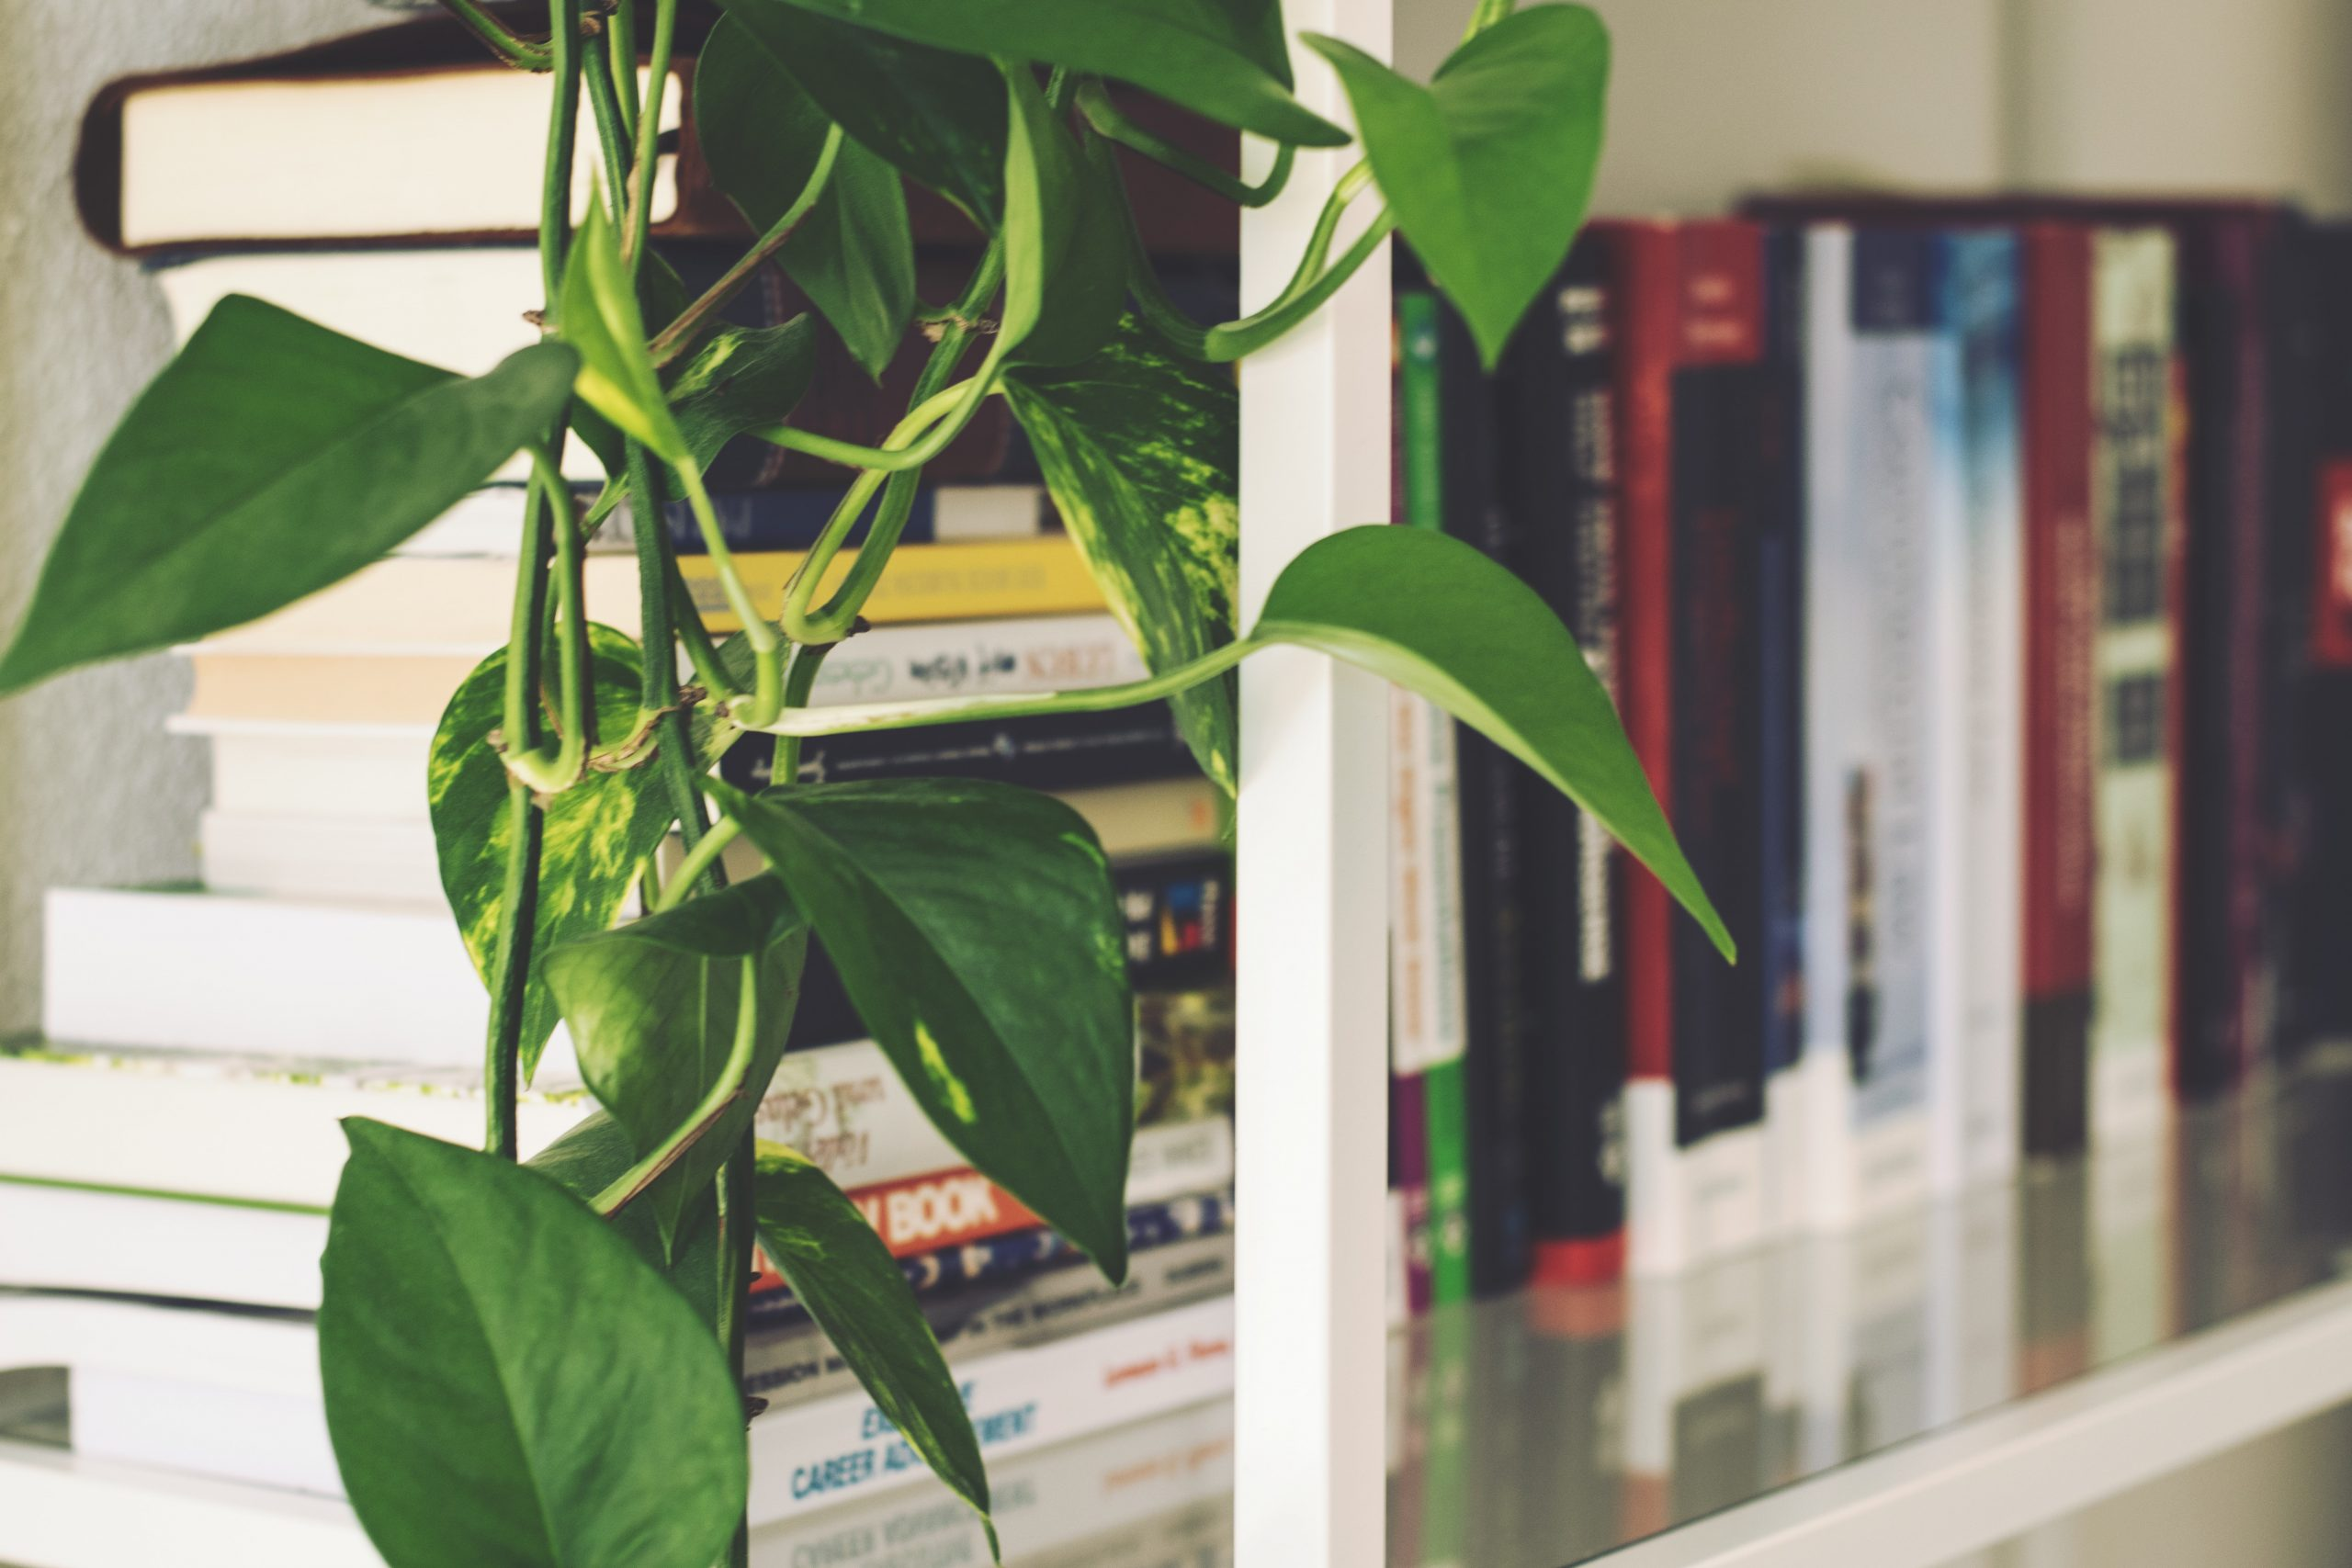 Home Office - Plant on Shelf